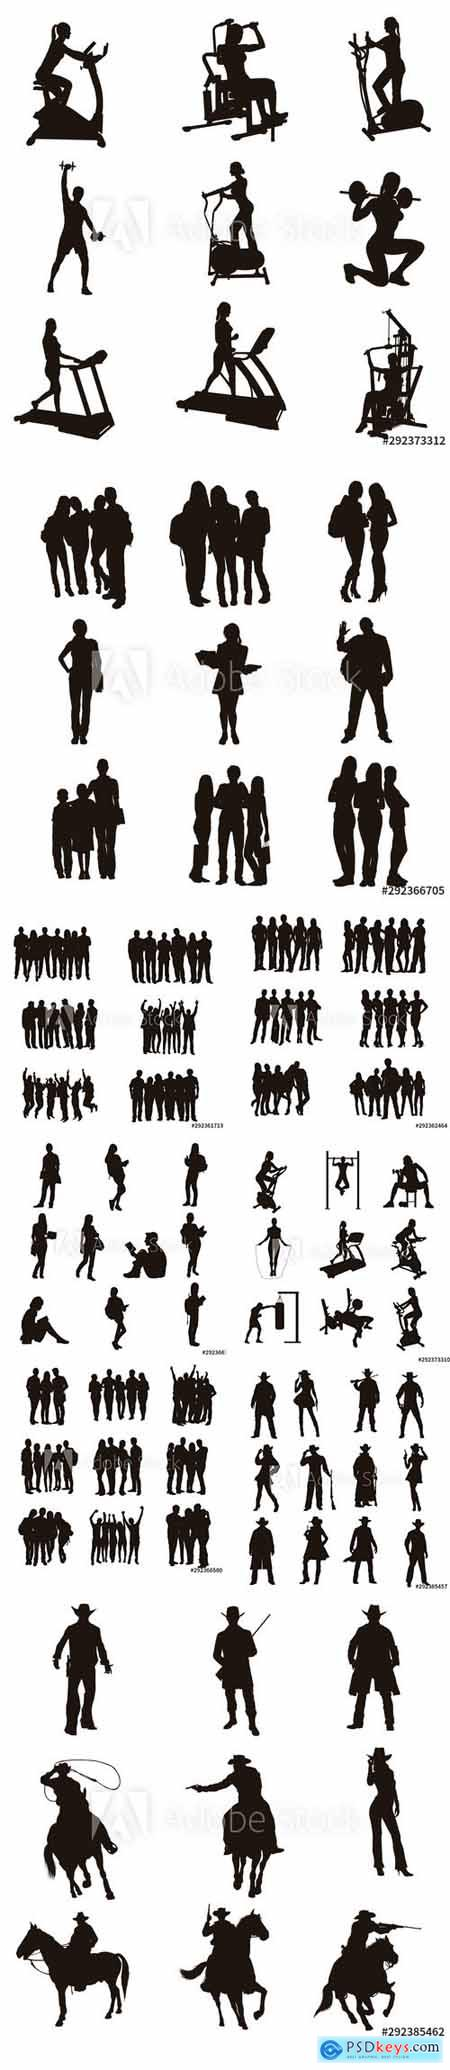 Vector set - Workout, Student, People and Cowboy Silhouette